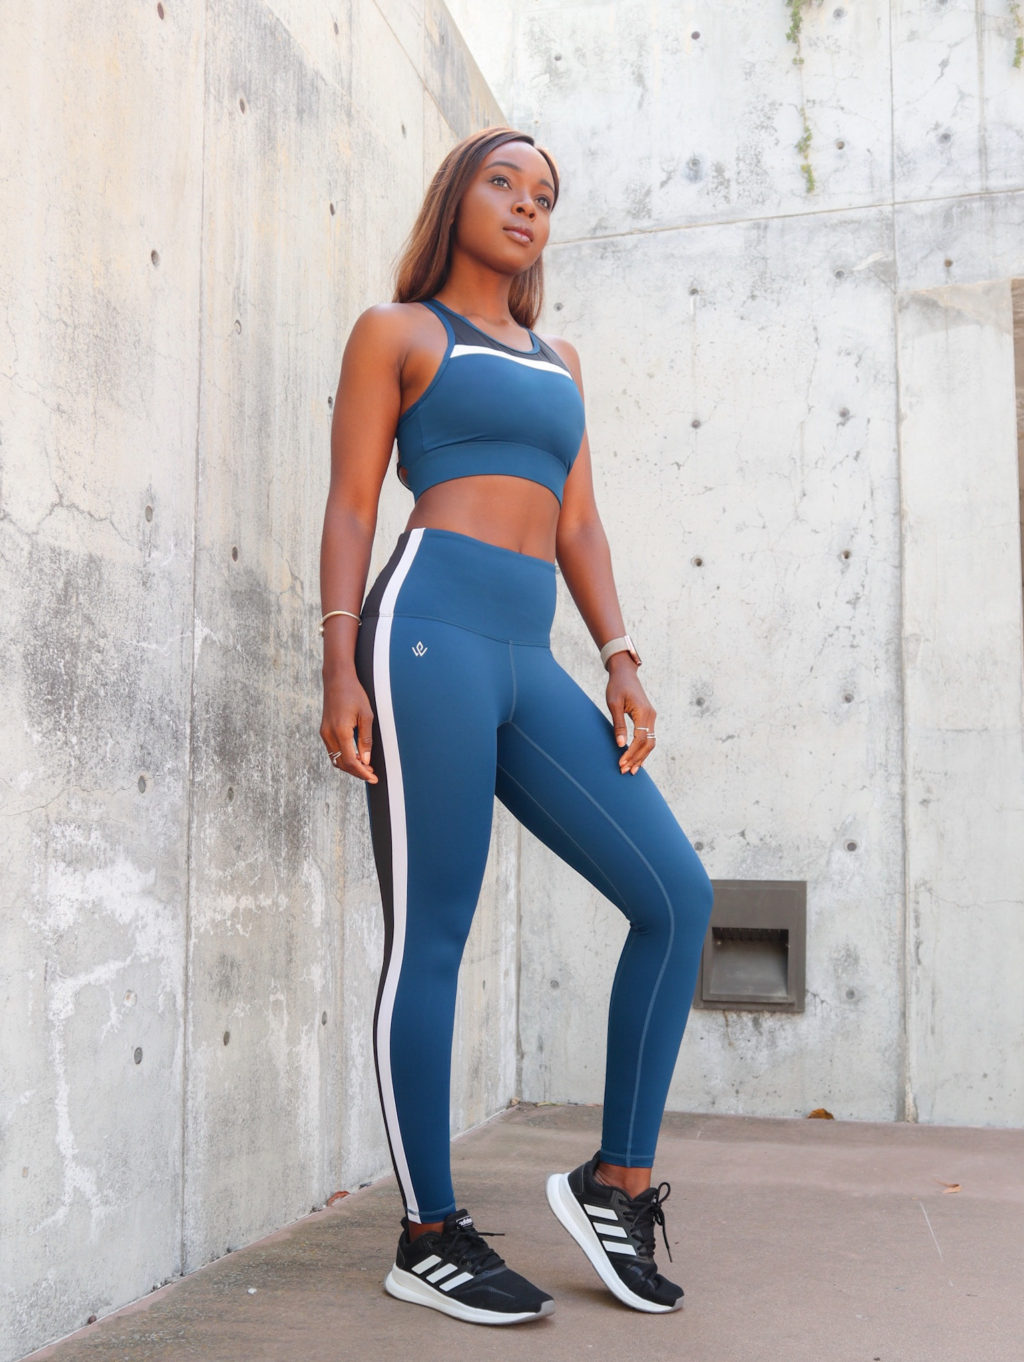 Workout empire legging reviews